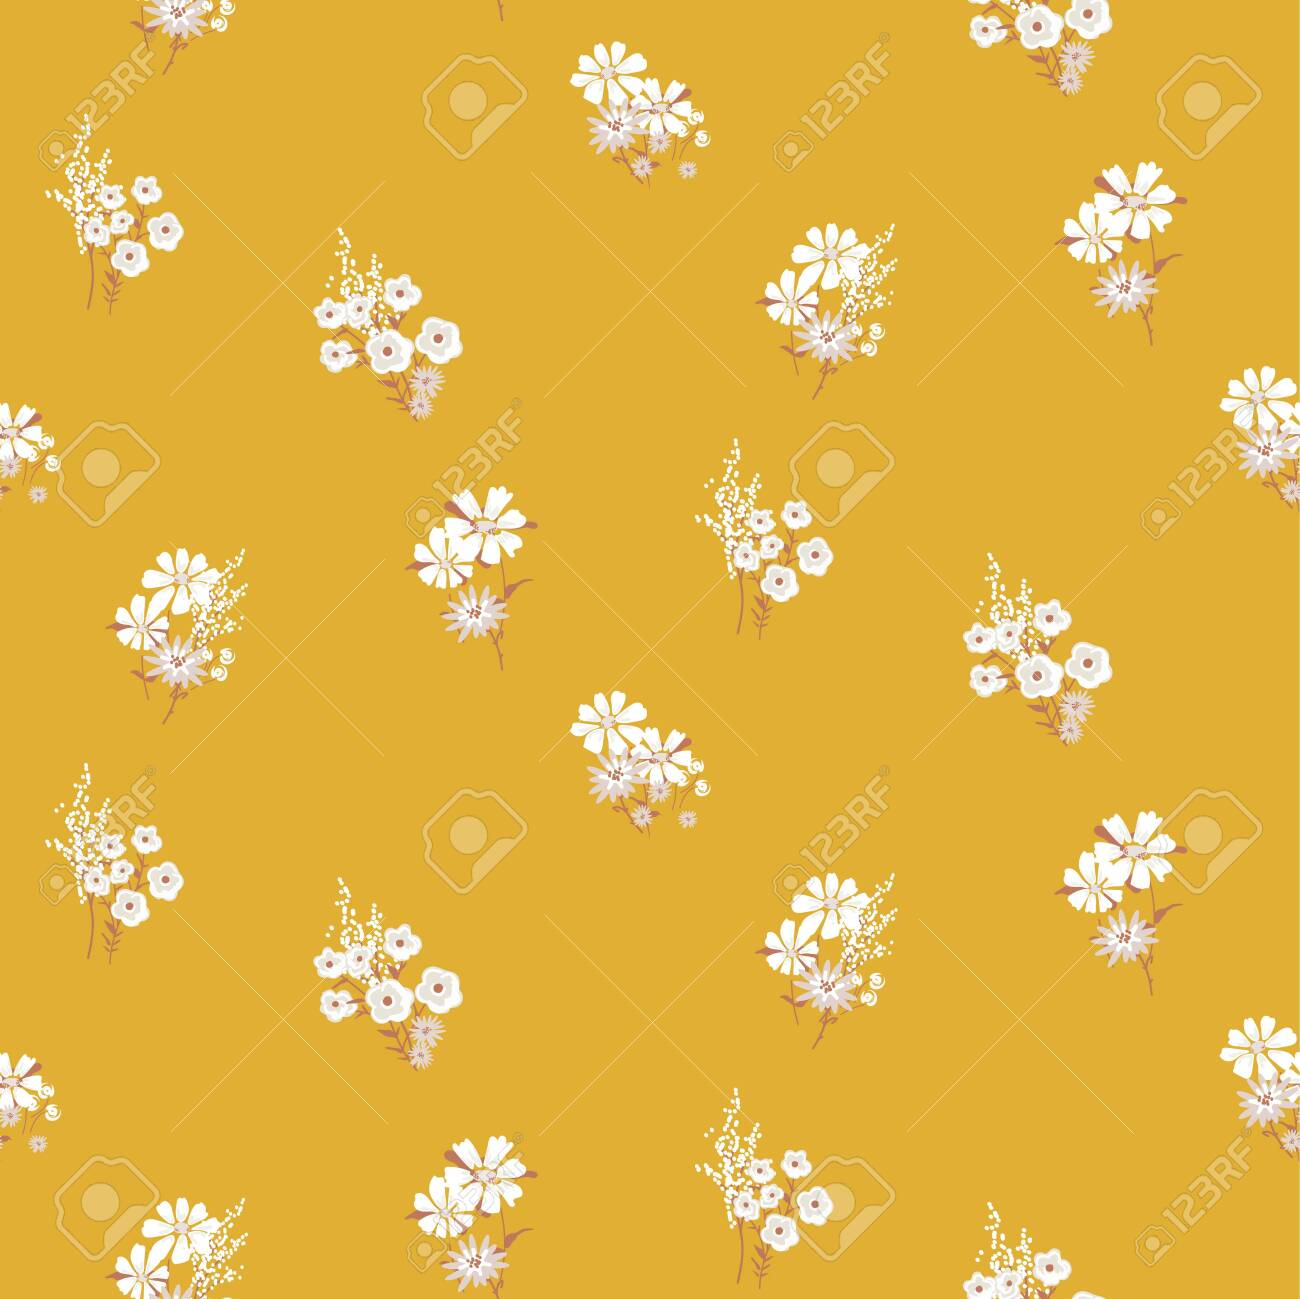 Flowers, Canola Oil, Field Mustard, Rapeseed, Yellow, Mustard Plant, Plant  Stem, Cut Flowers transparent background PNG clipart   HiClipart